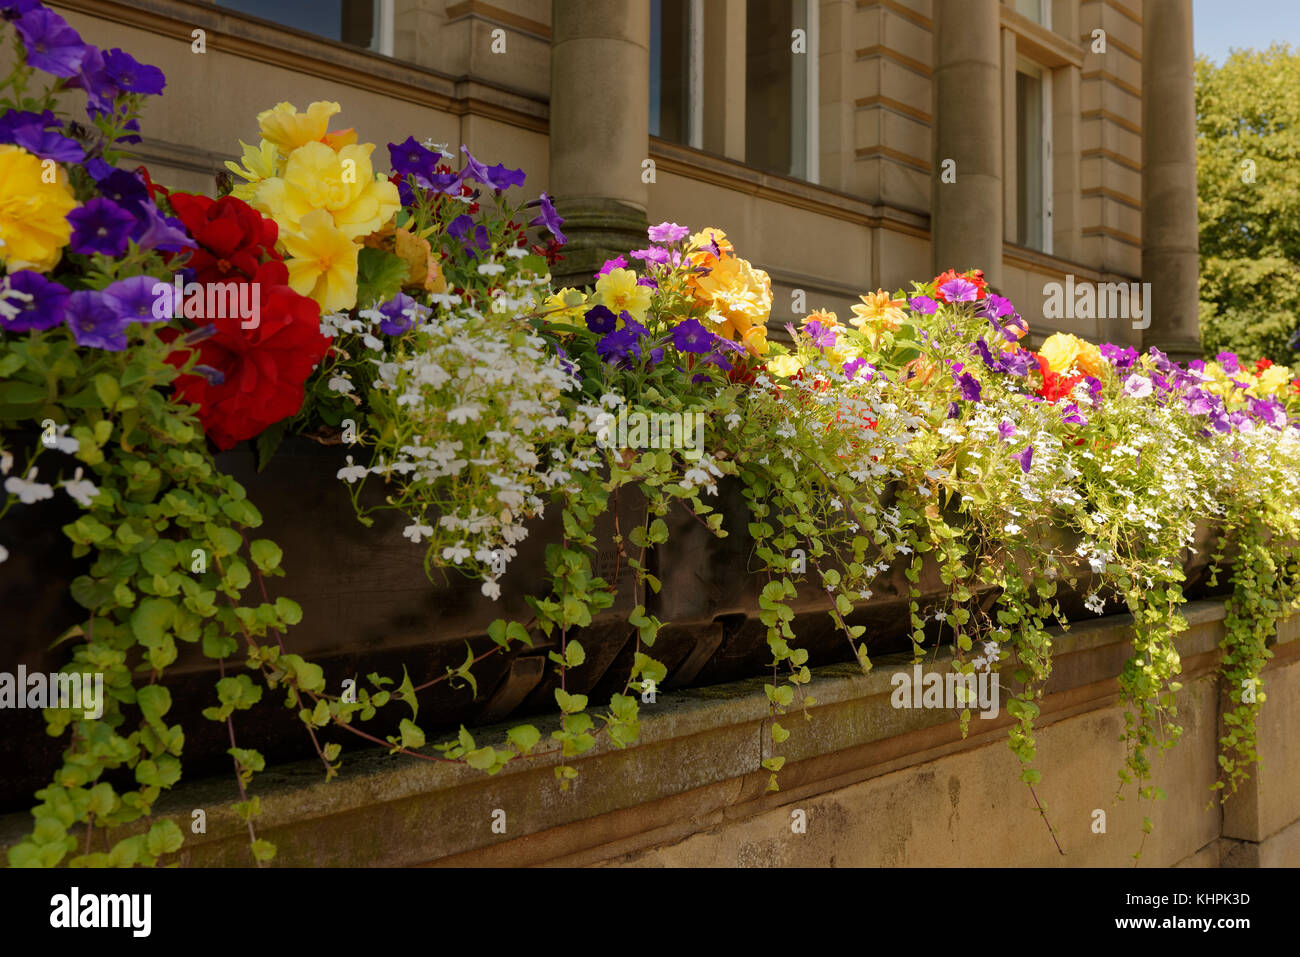 Floral Library Stock Photos & Floral Library Stock Images - Alamy